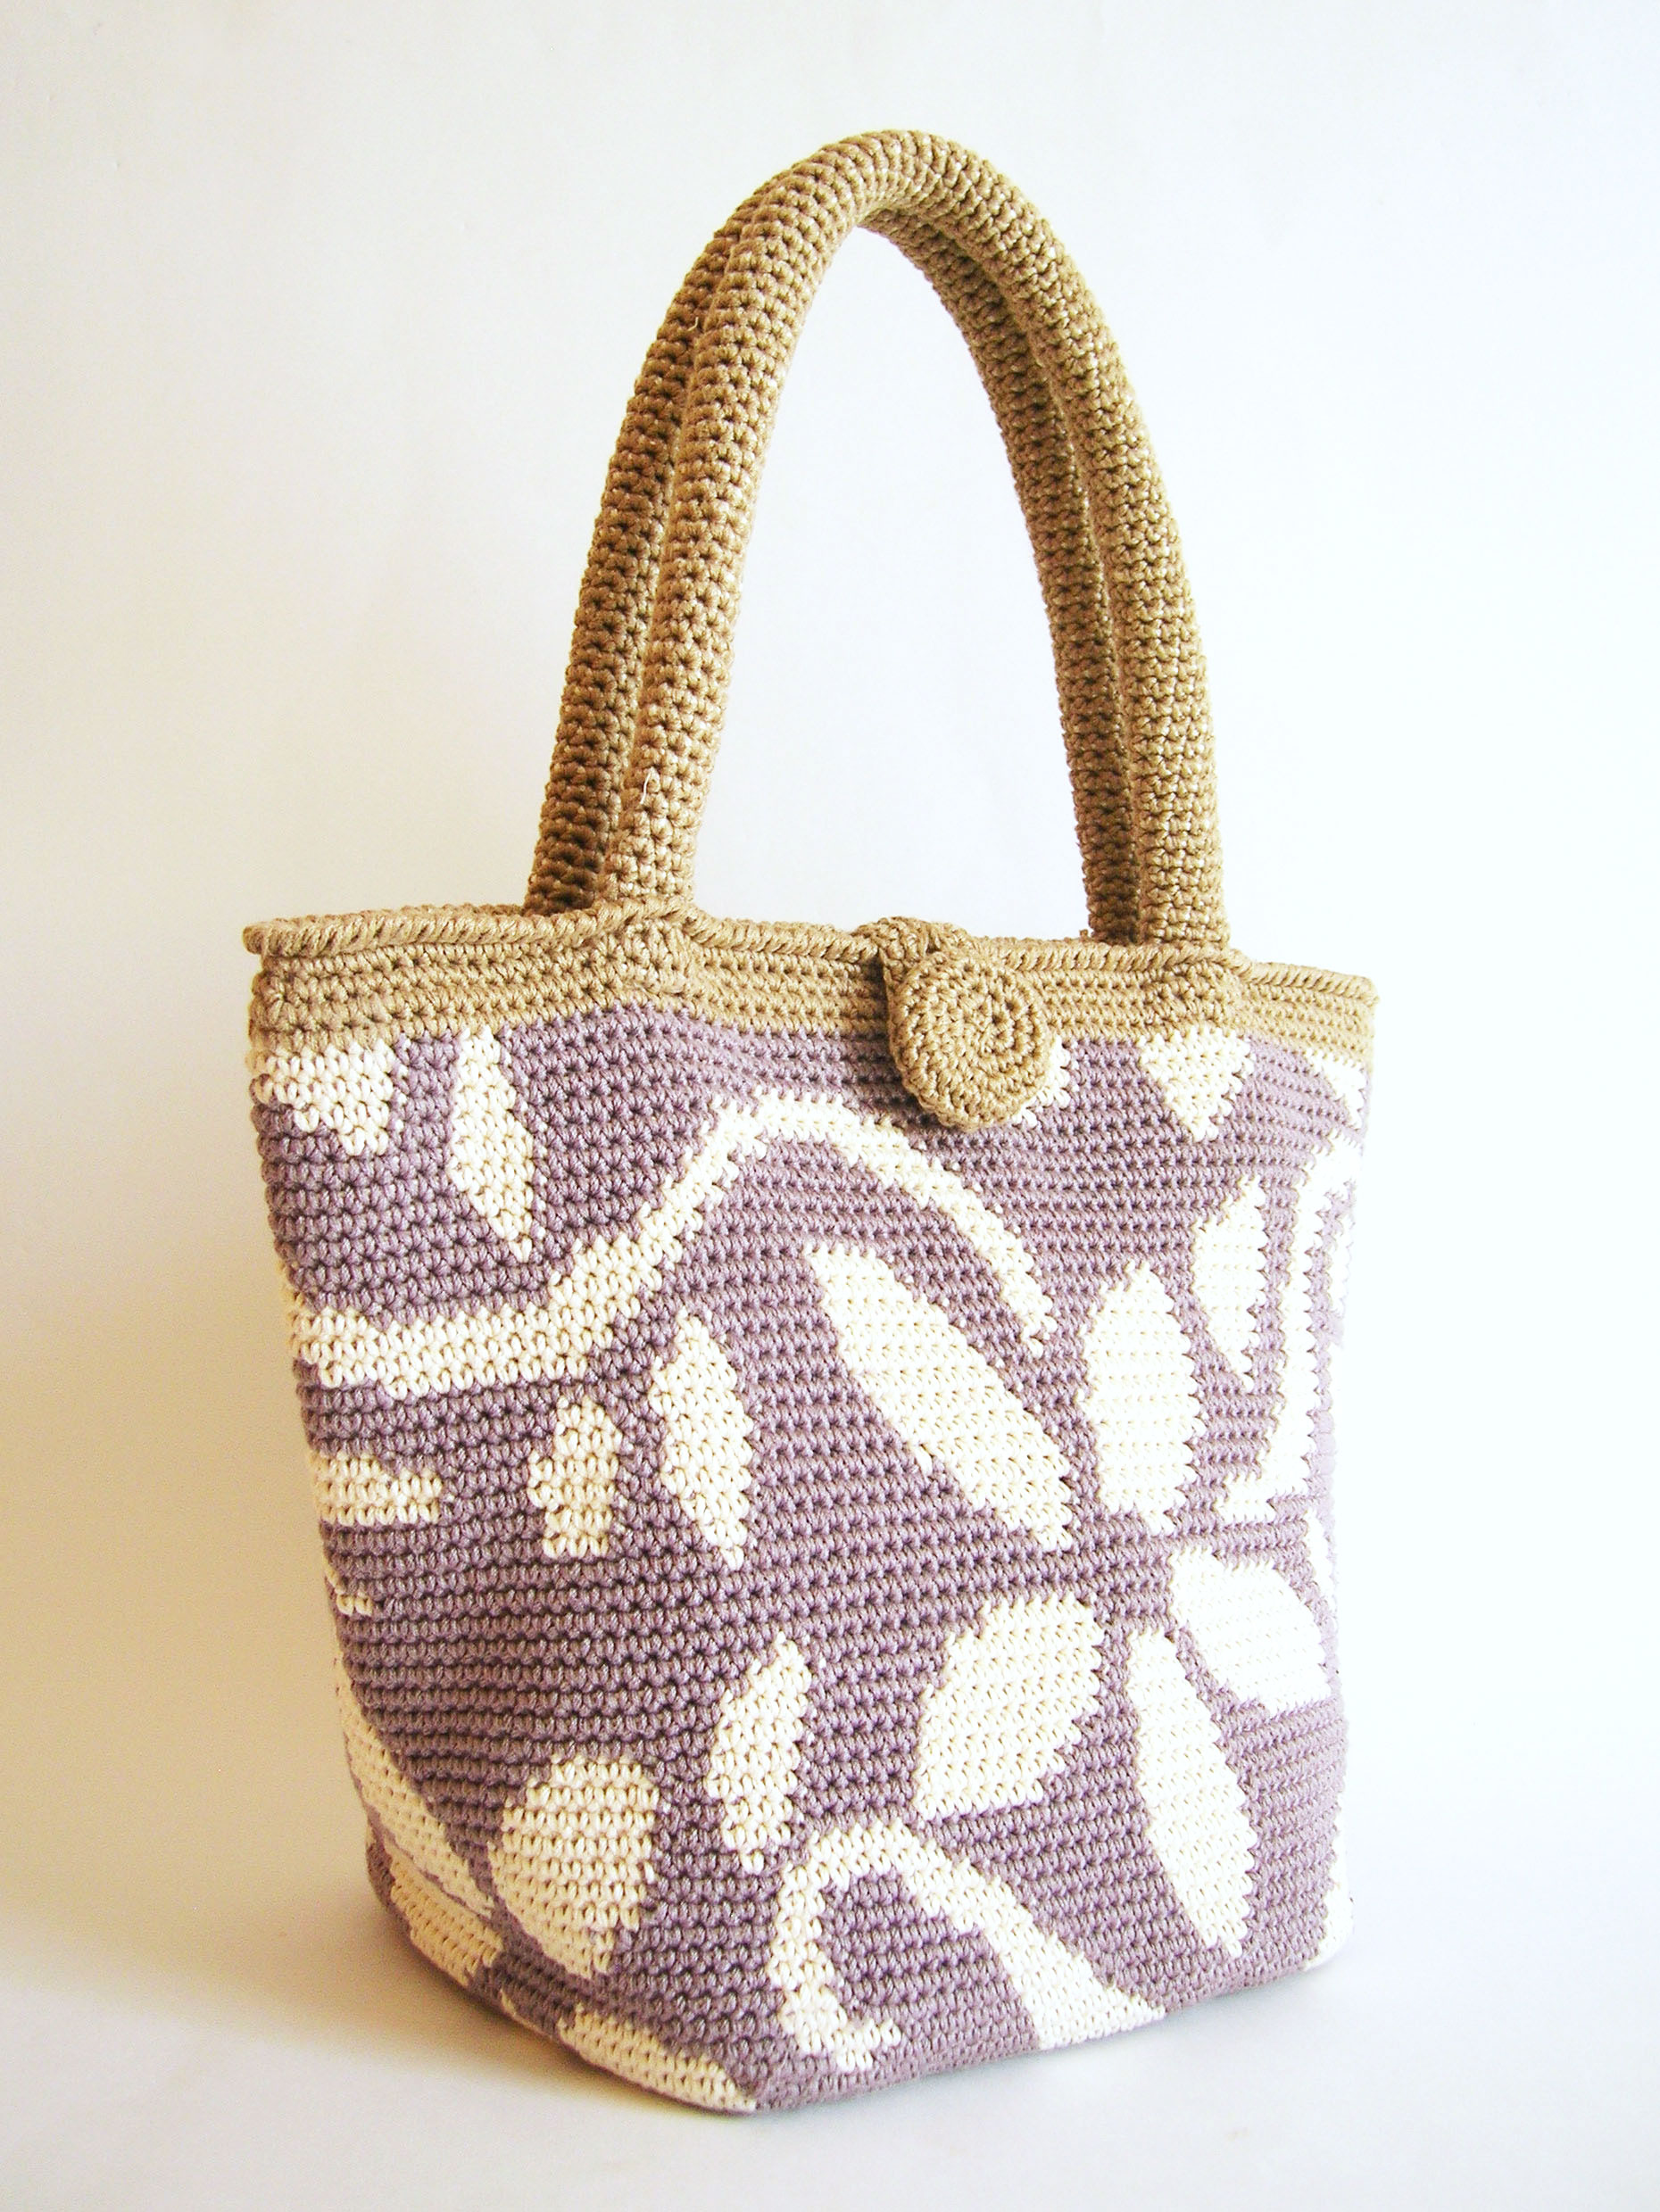 Tapestry Crochet Bag : TAPESTRY_CROCHET_BAG_2